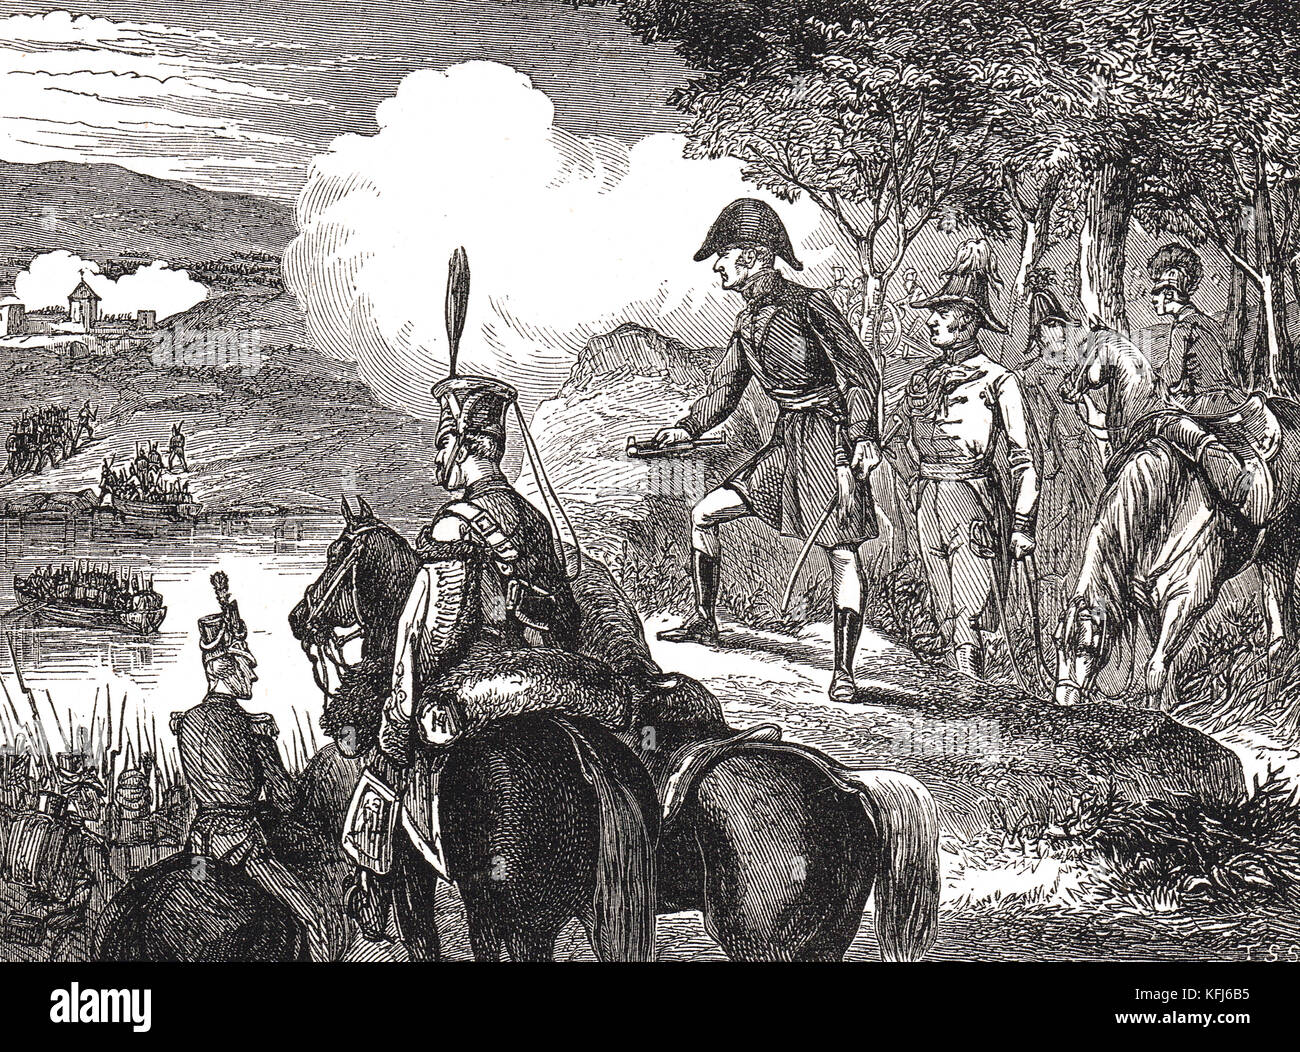 Wellington watching his army, Crossing of the Douro river, 1809, The Second Battle of Porto, also known as the Battle - Stock Image